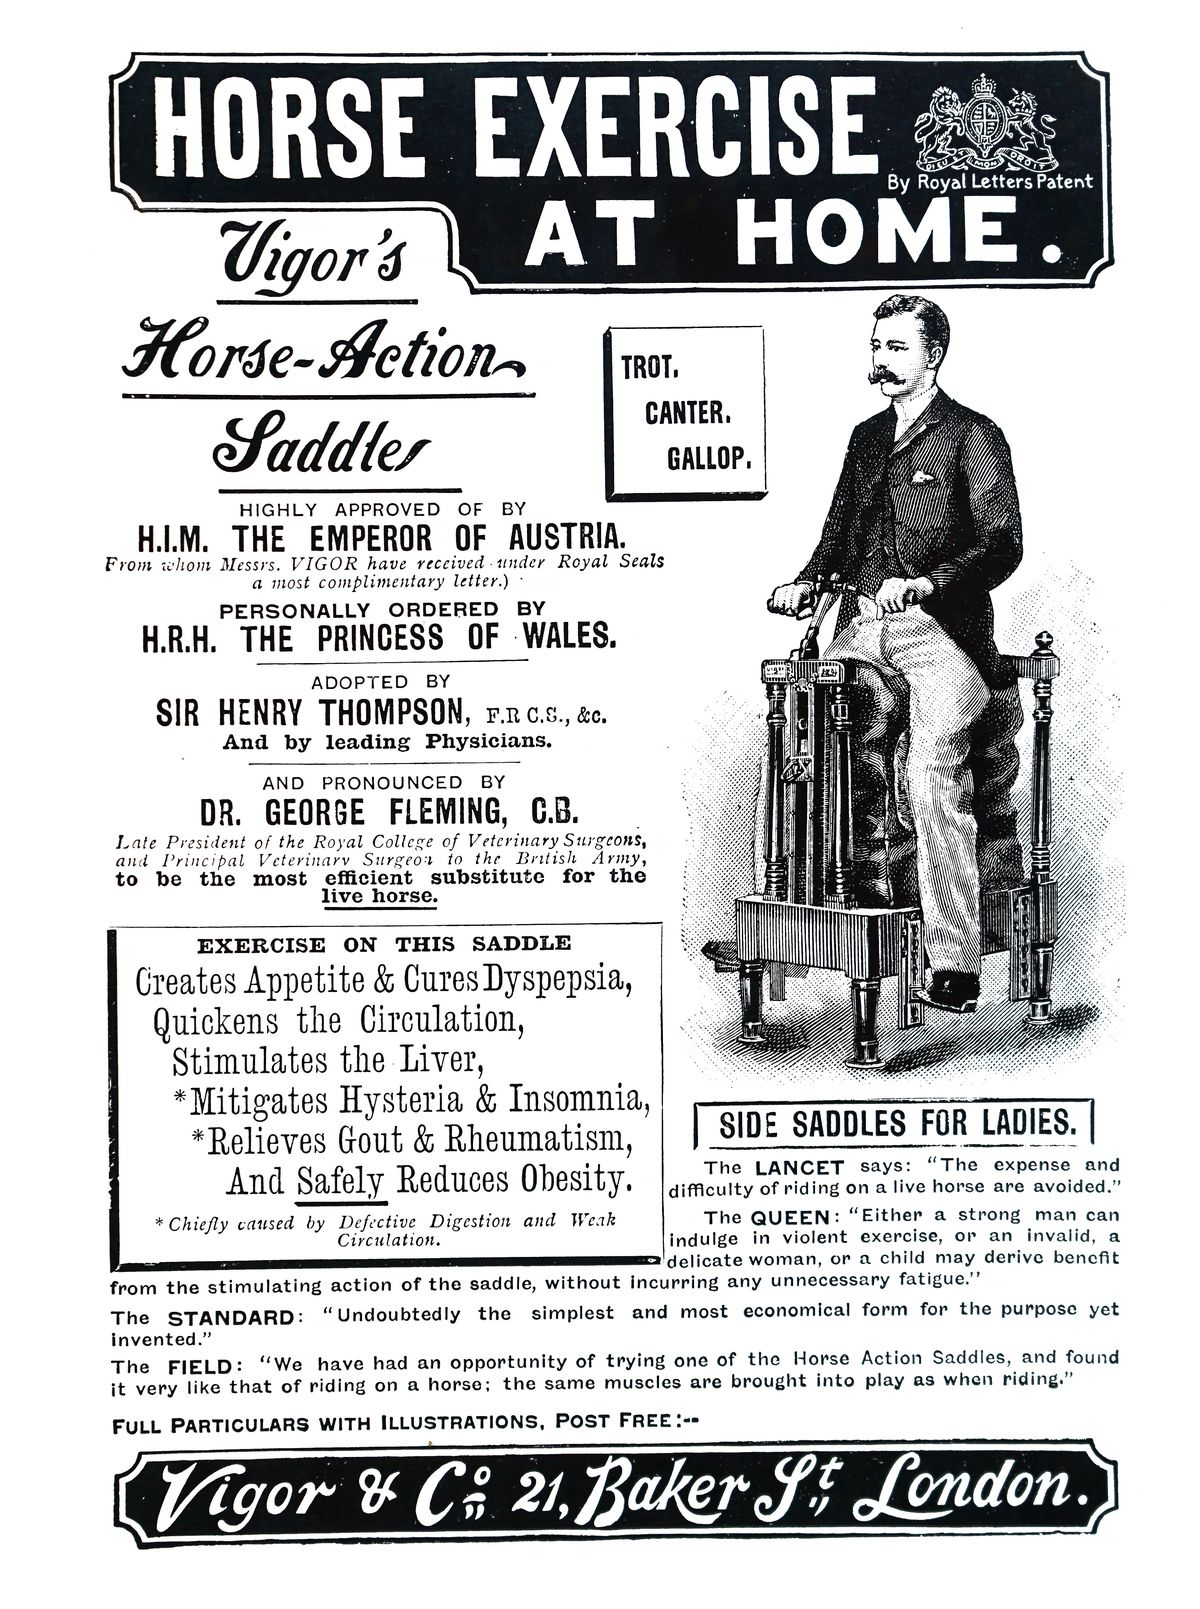 An archival magazine ad for a vibrating saddle